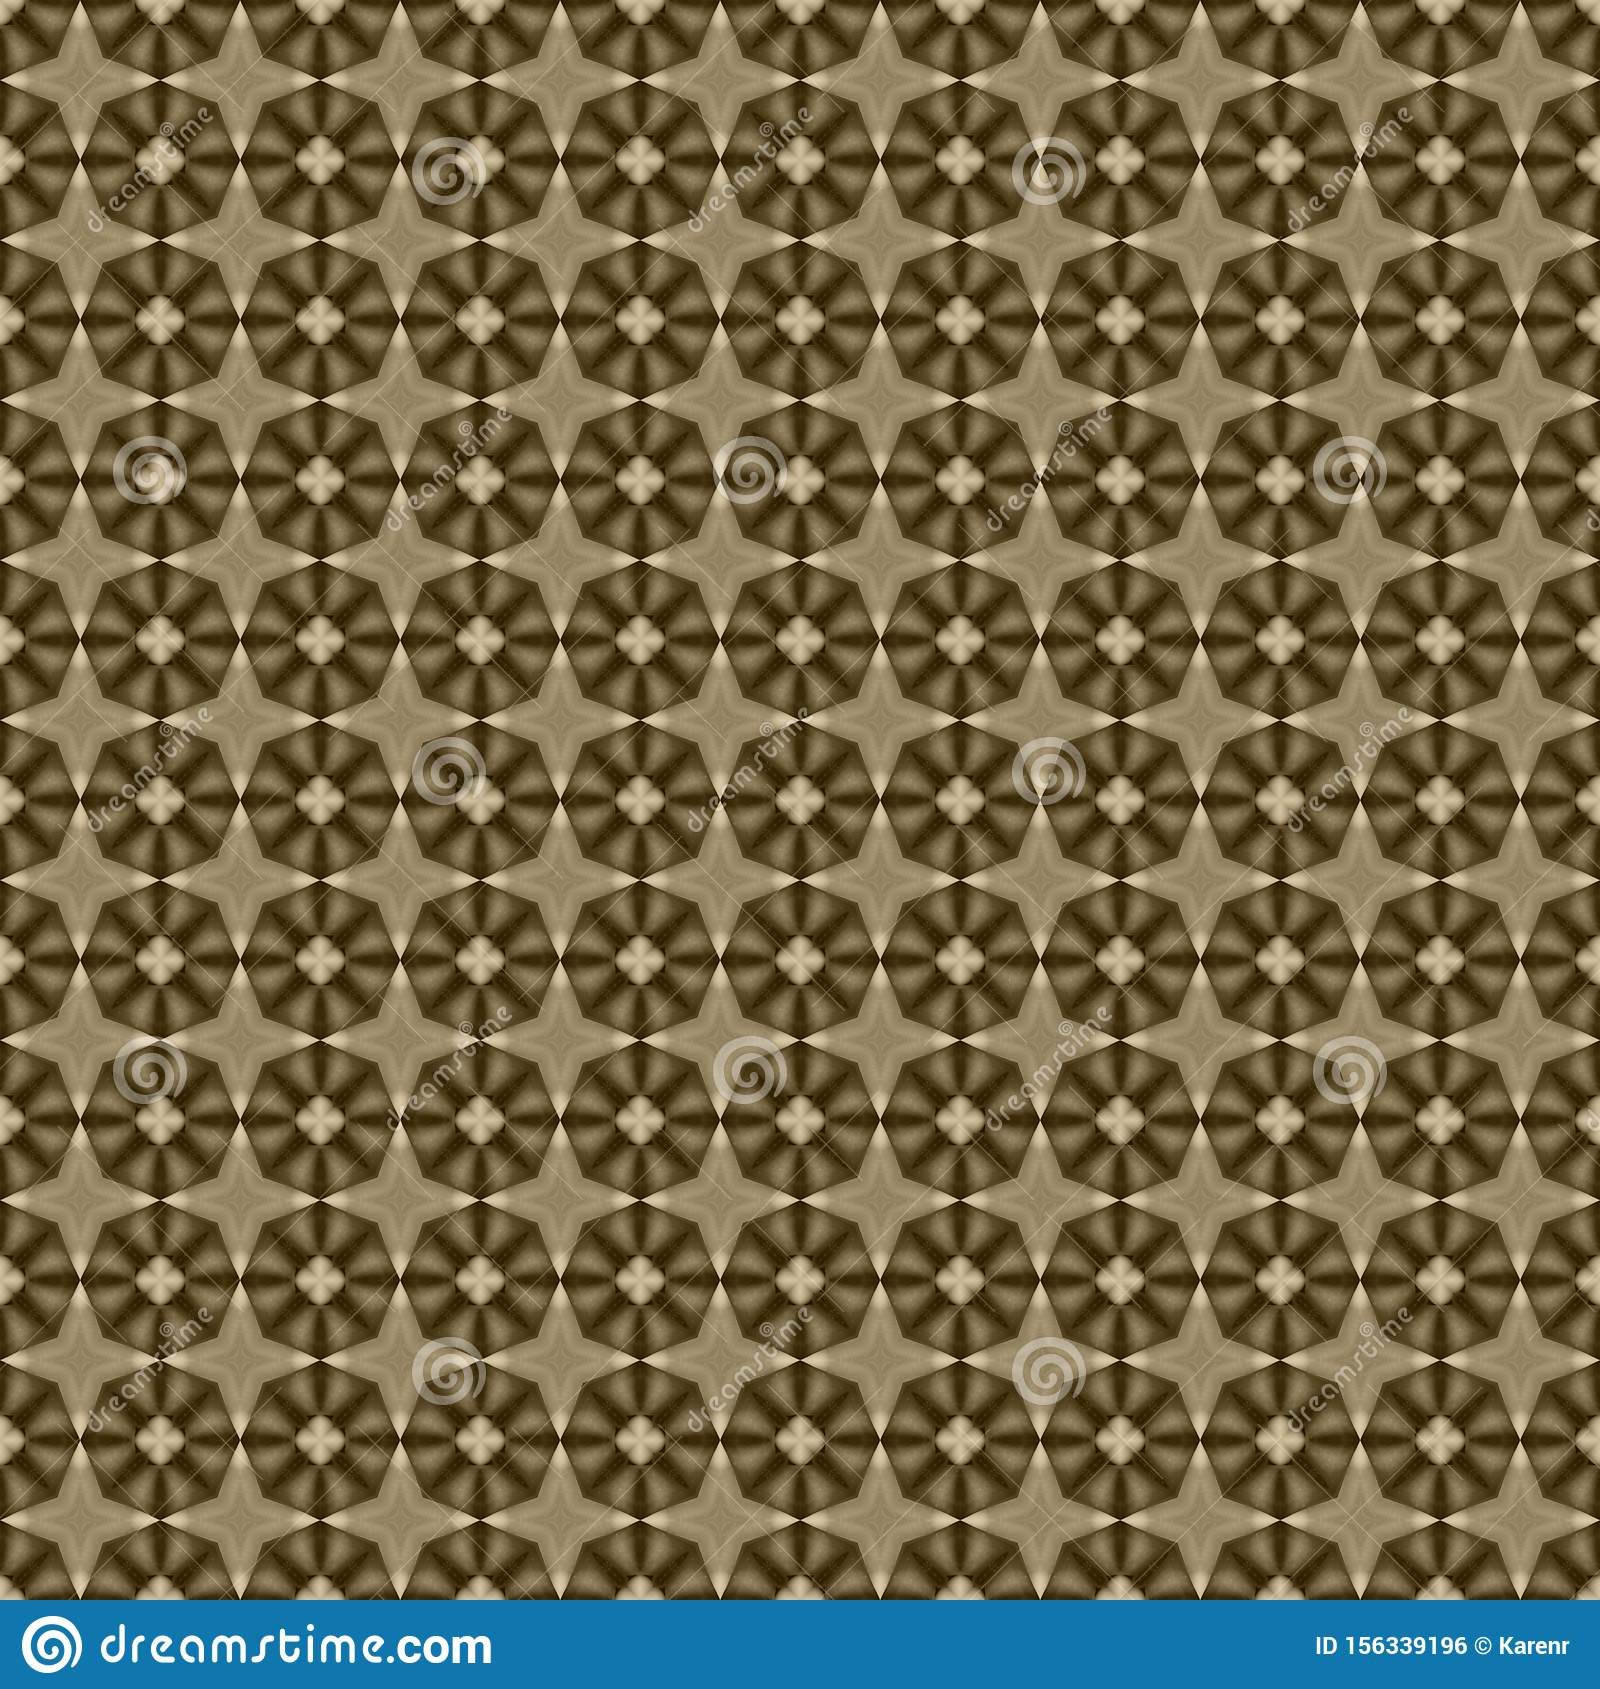 Brown geometric mosaic detailed seamless textured pattern background